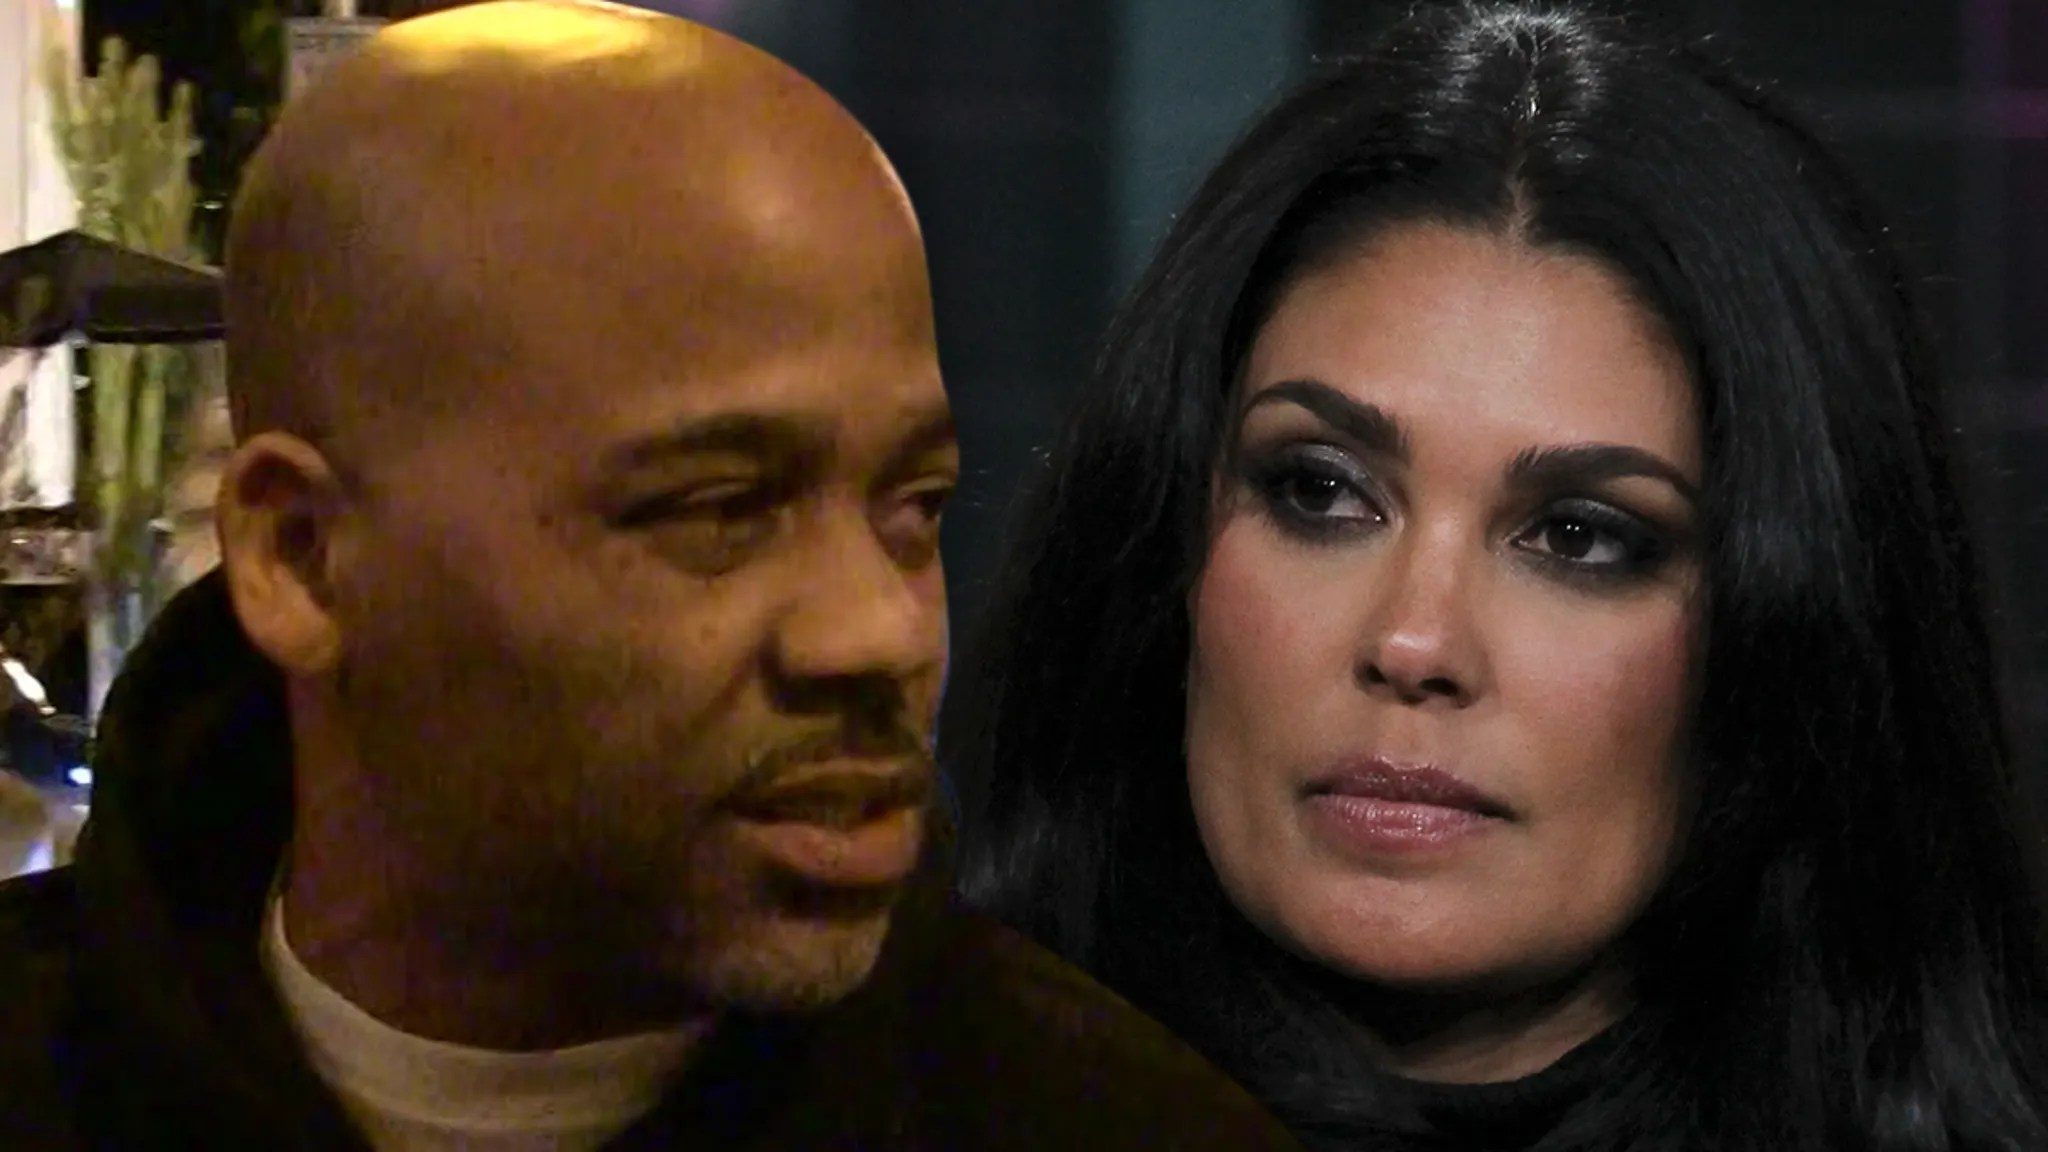 Damon Dash Sues Ex-Wife for Fraud Over Fashion Line Payments